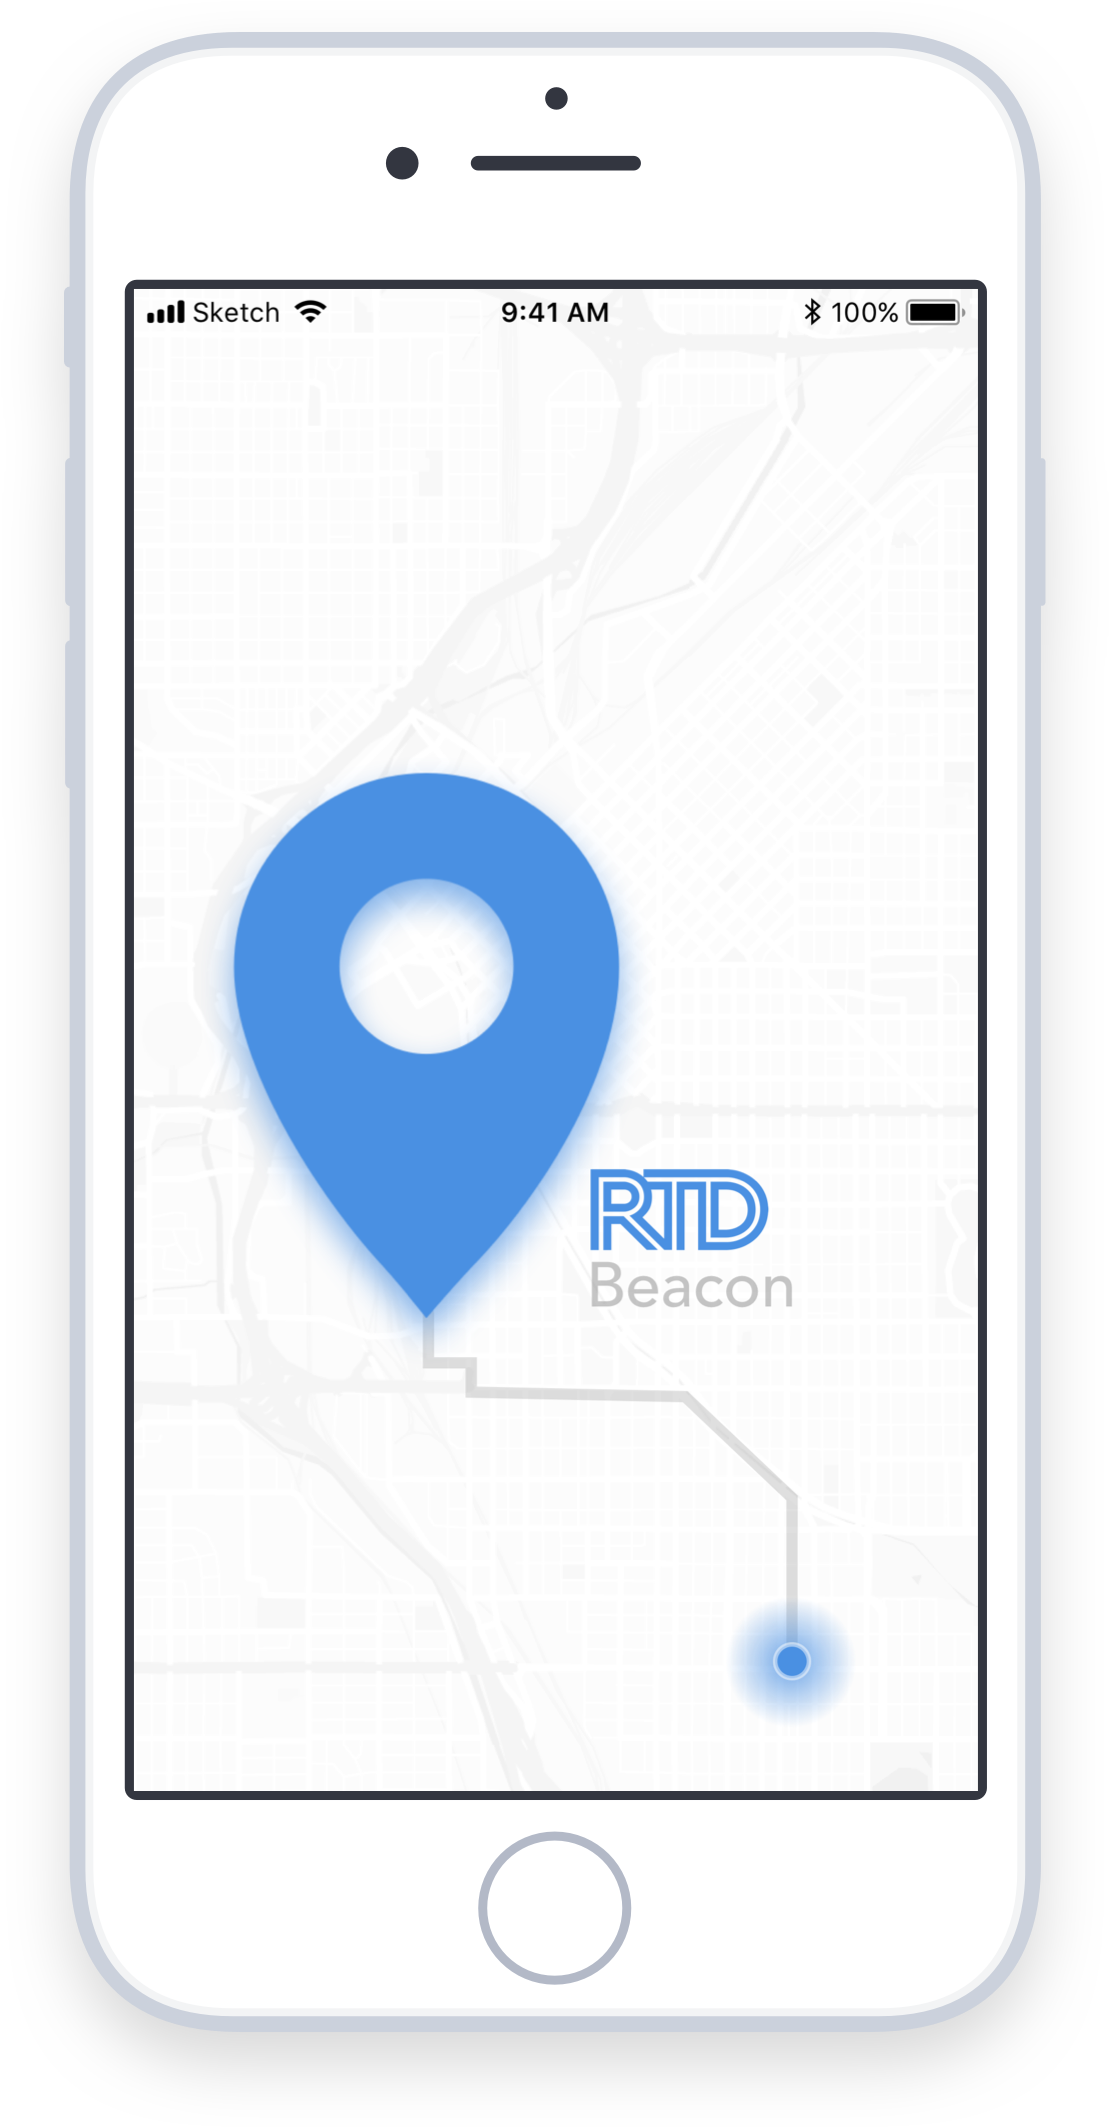 One spot for all your public transit needs - No more searching for outdated schedules or forgetting your ticket at home. RTD Beacon allows users to see real time transit routes and navigate their journey on public transit with ease.